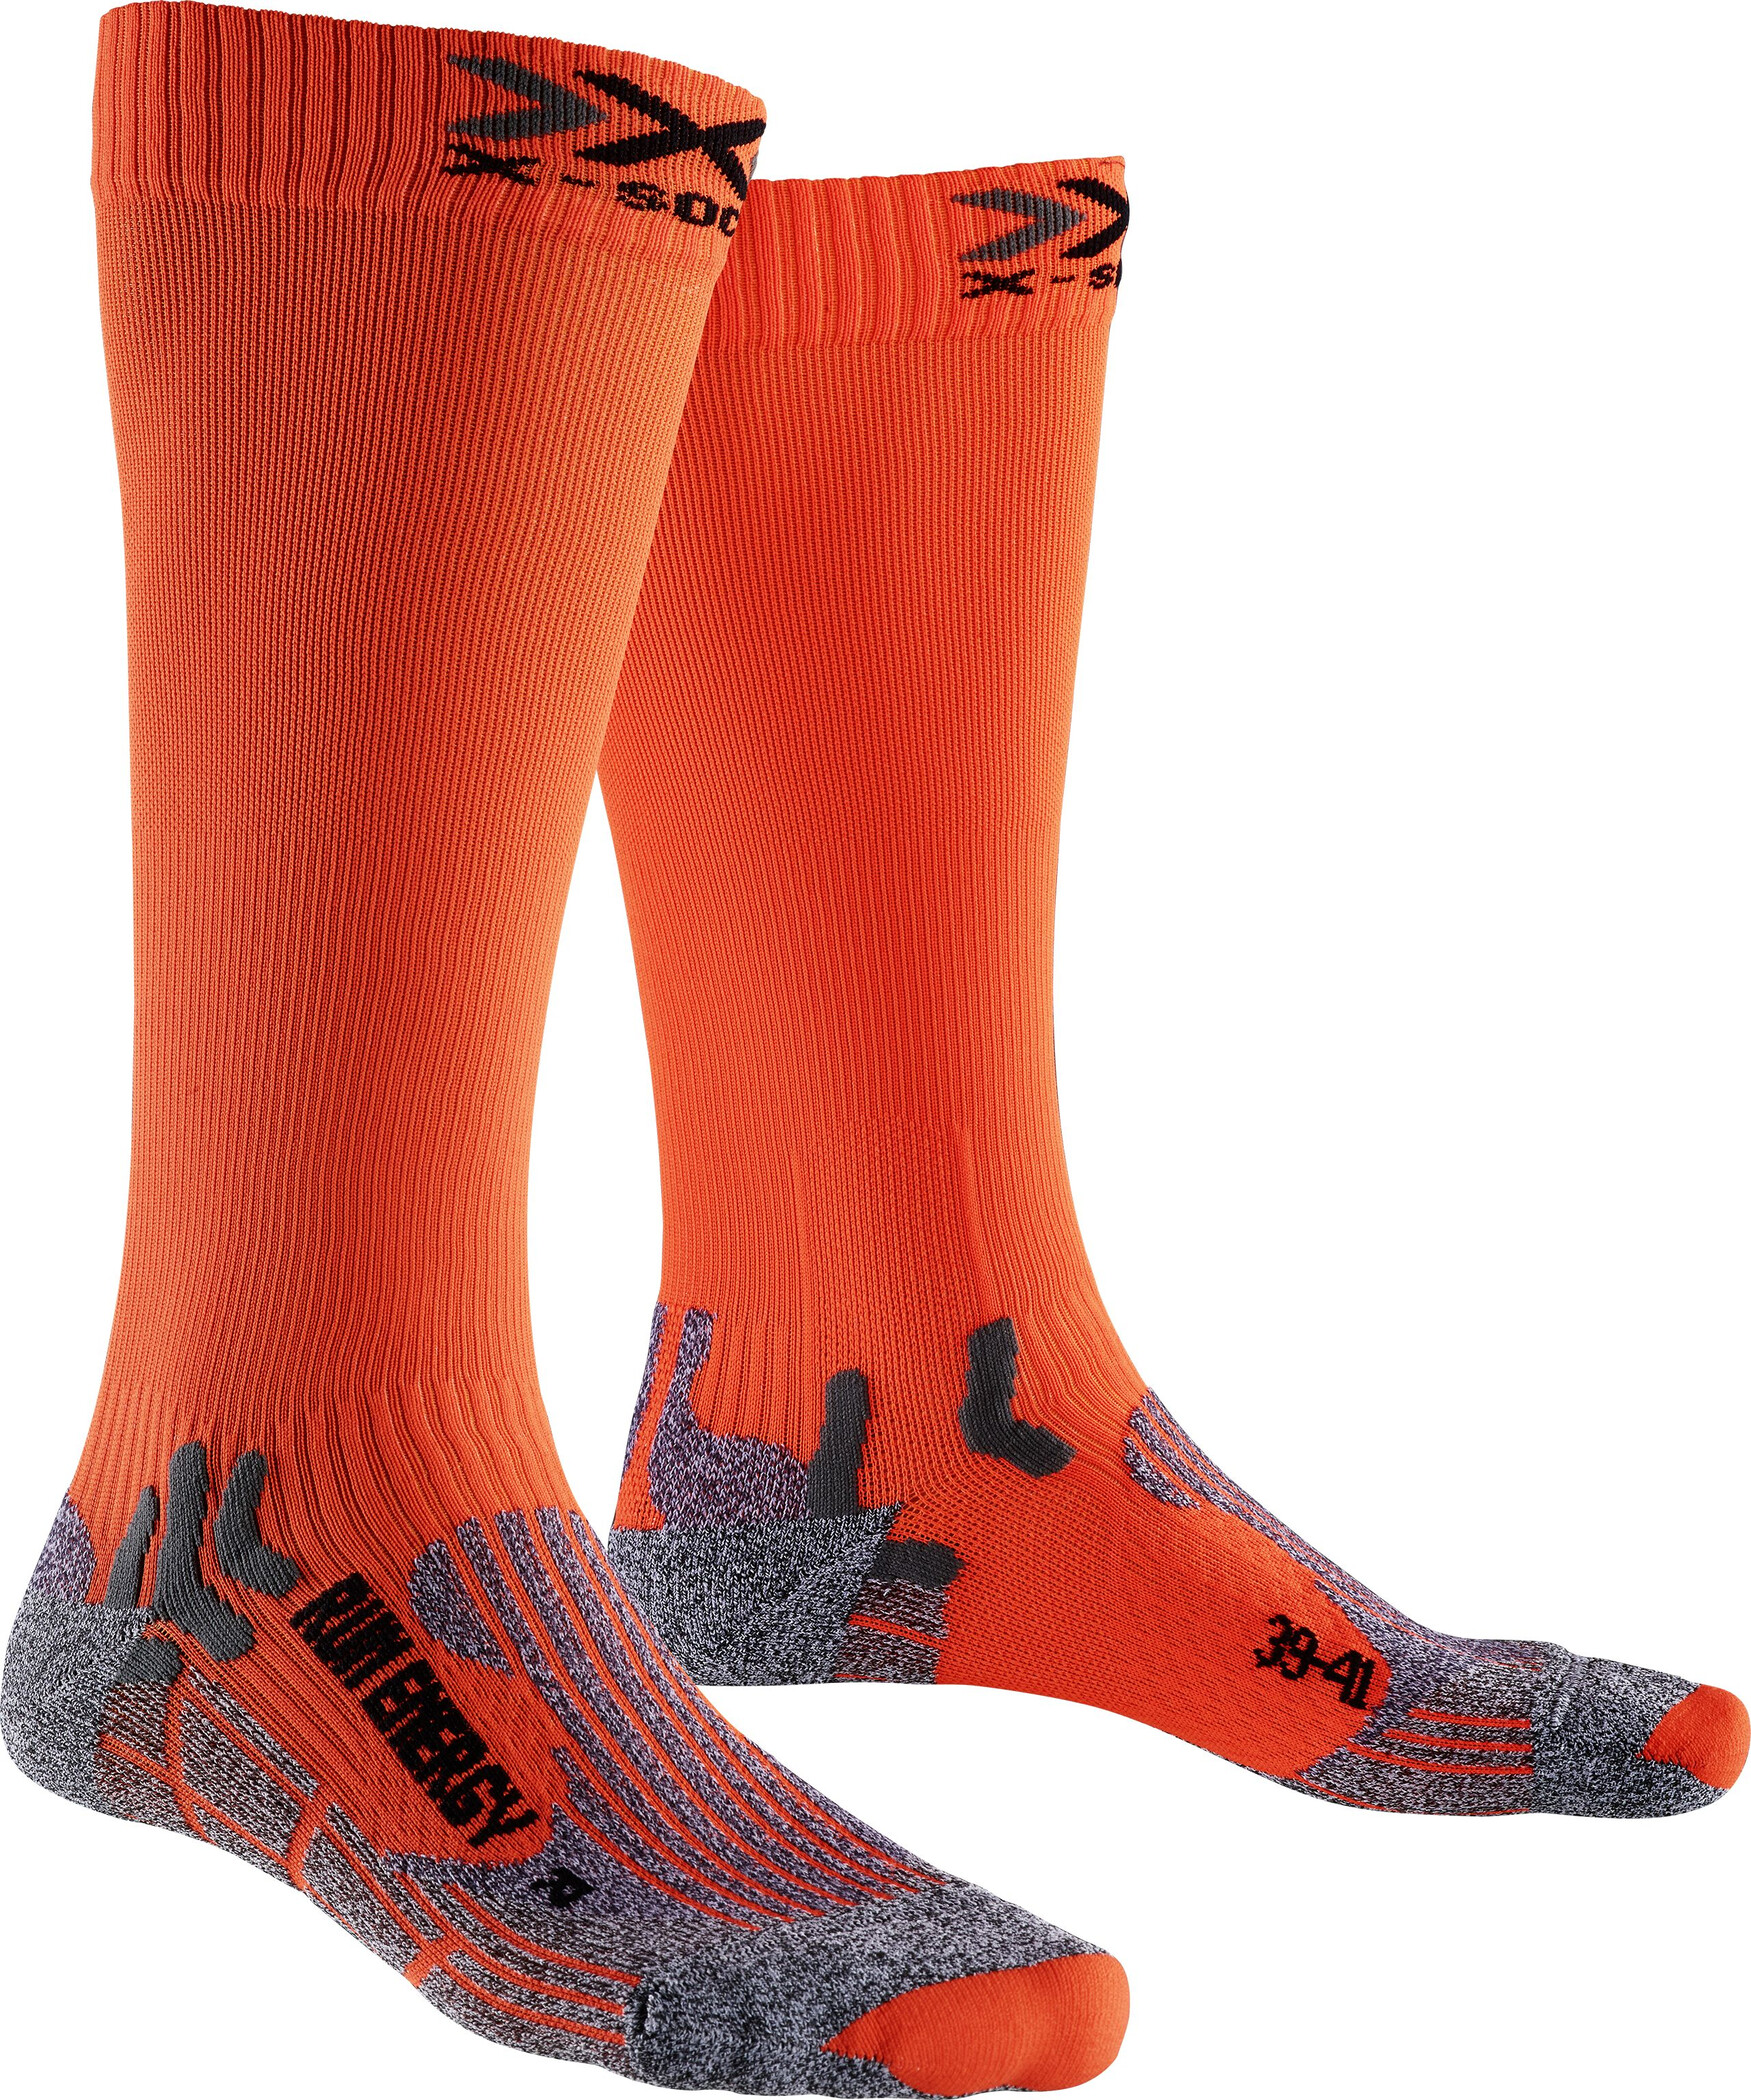 X-Socks Run Energizer Long Strømper, orange sunshine | Kompressionstøj